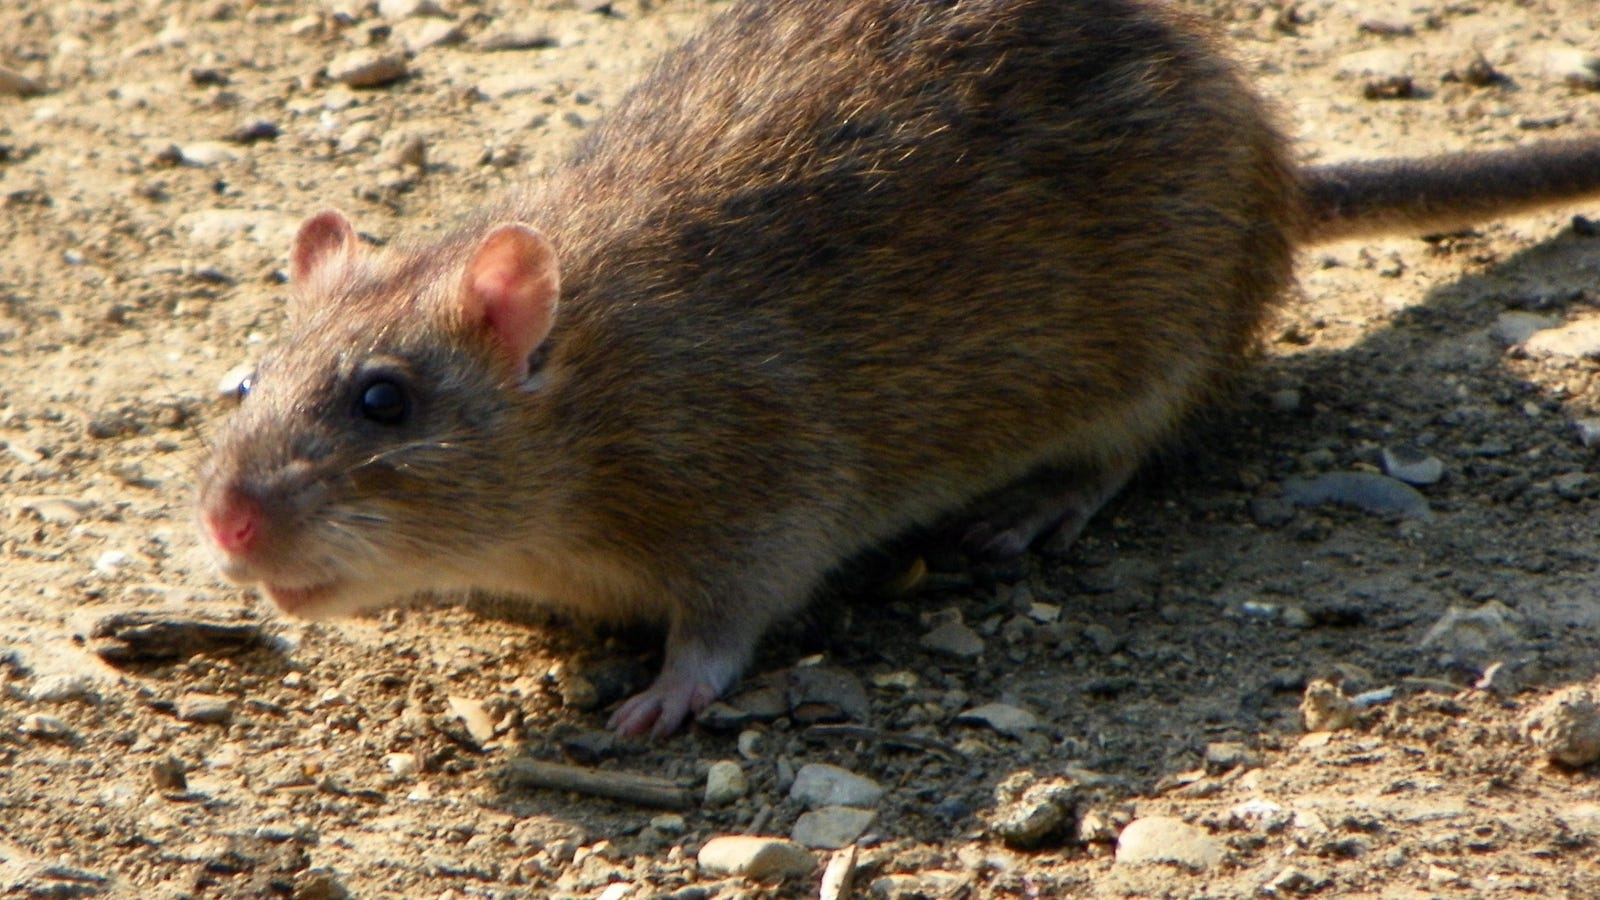 'Genius' Rats Are Wreaking Havoc on Washington, DC